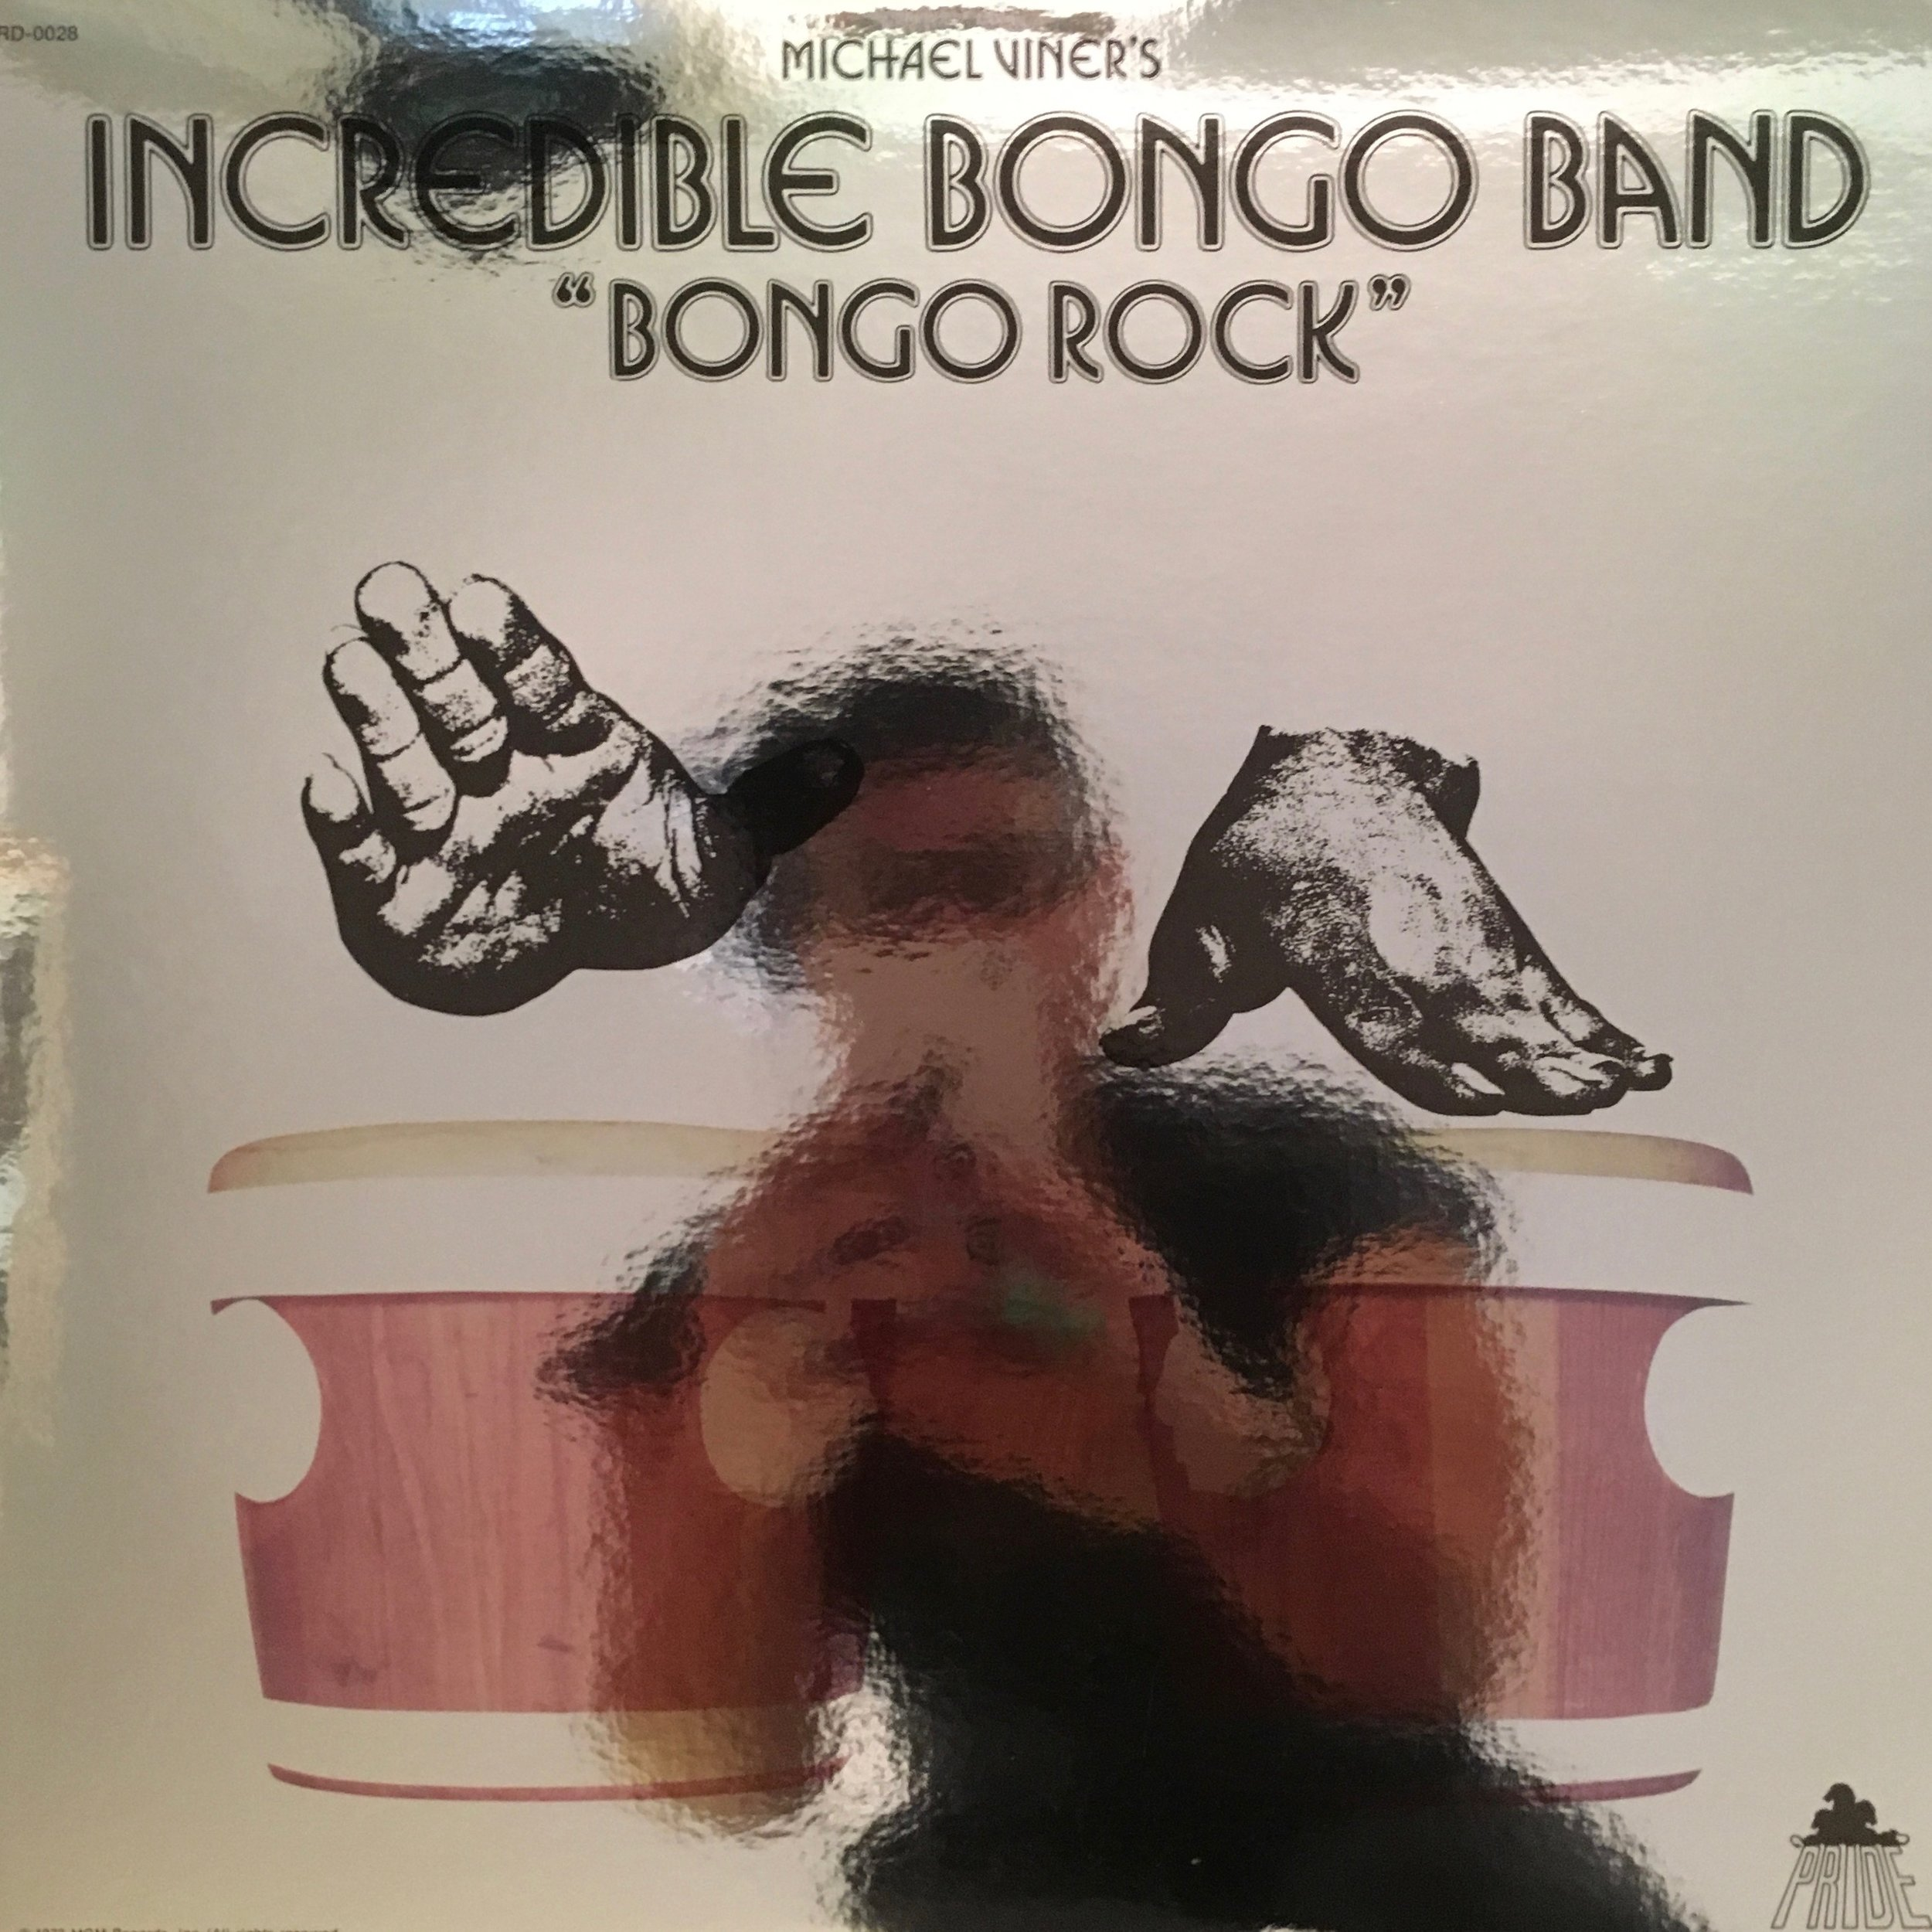 Shiny shiny 40th anniversary sleeve from Mr. Bongo